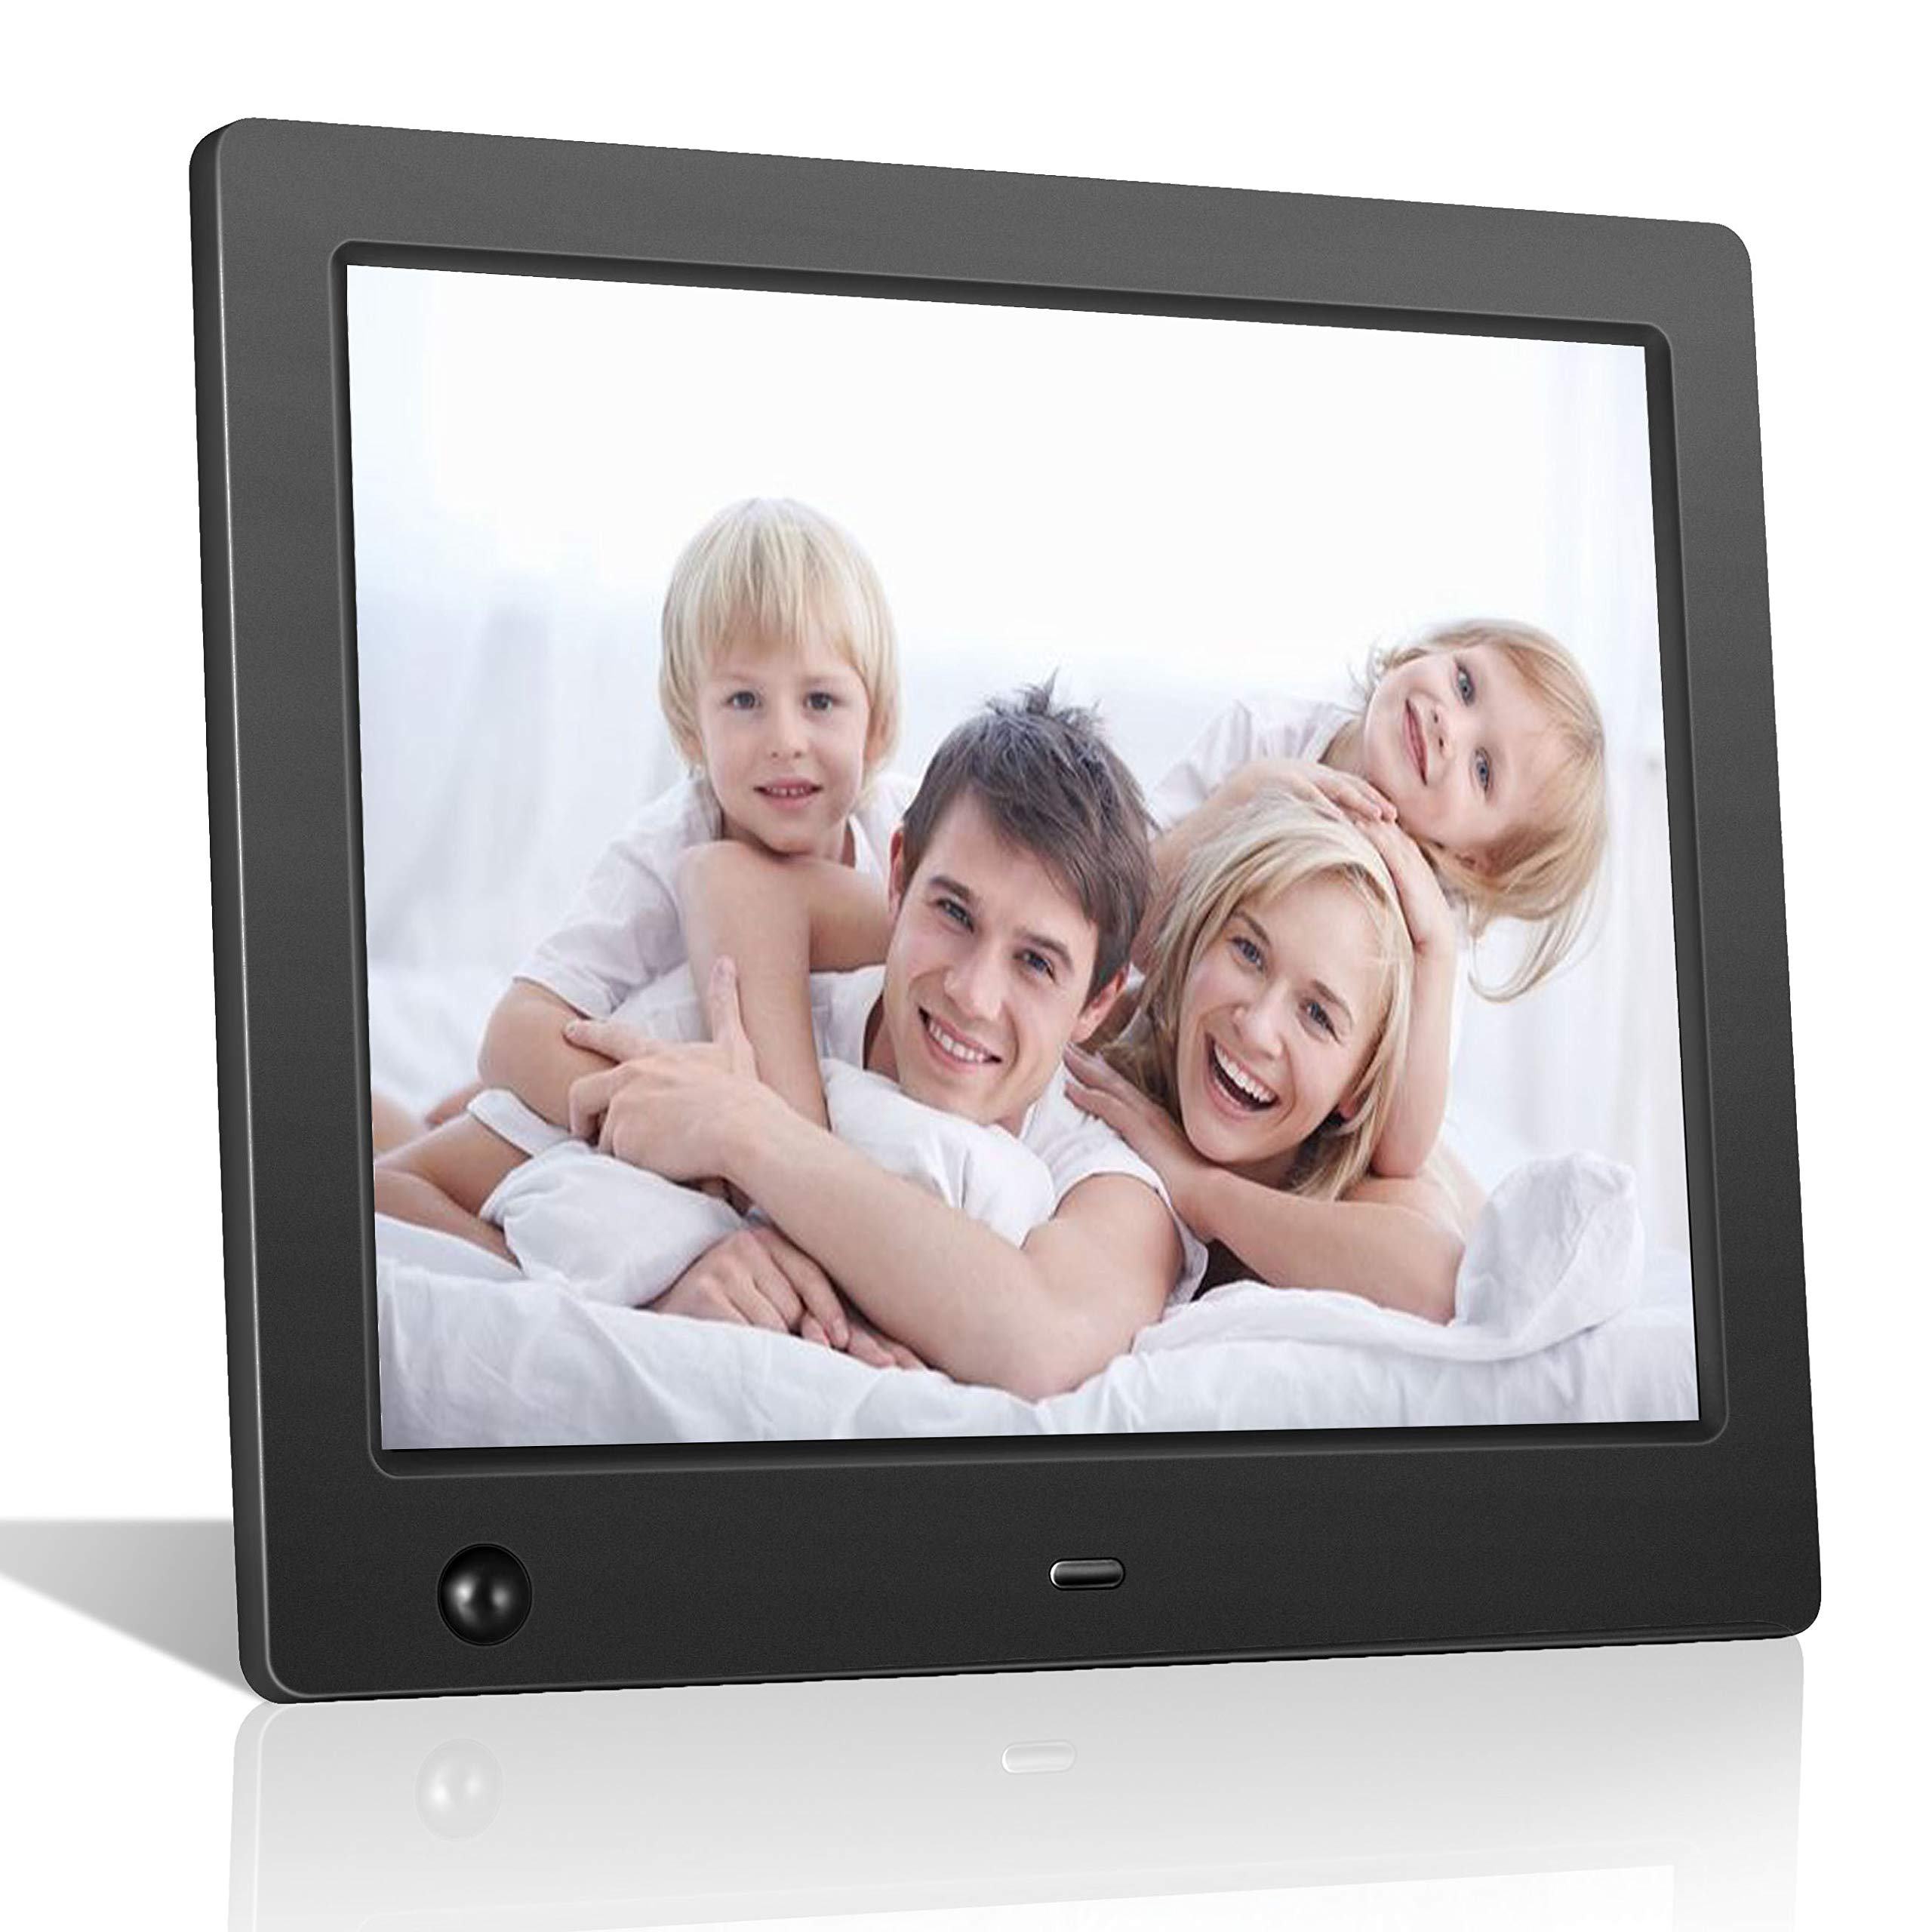 Digital Picture Frame 8 inch Electronic Photo Frame with Motion Sensor and High Resolution 1024x768 IPS LCD/1080P 720P Video Player/Stereo/MP3/Calendar/Time/Remote Control by FLYAMAPIRIT